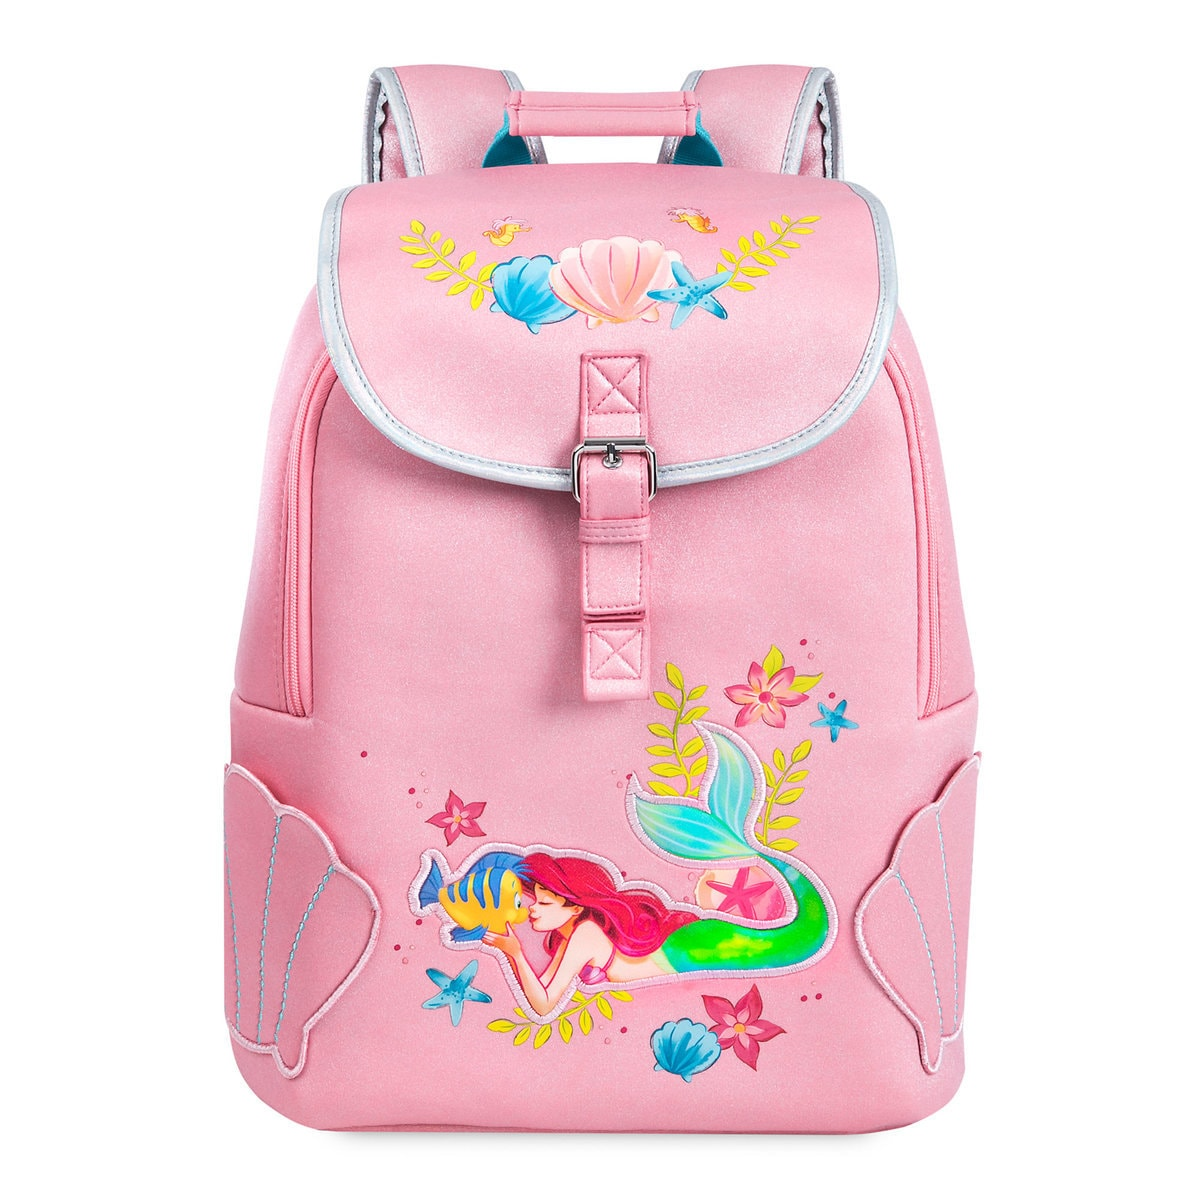 abb68957260 Product Image of Ariel Backpack - Personalizable   1